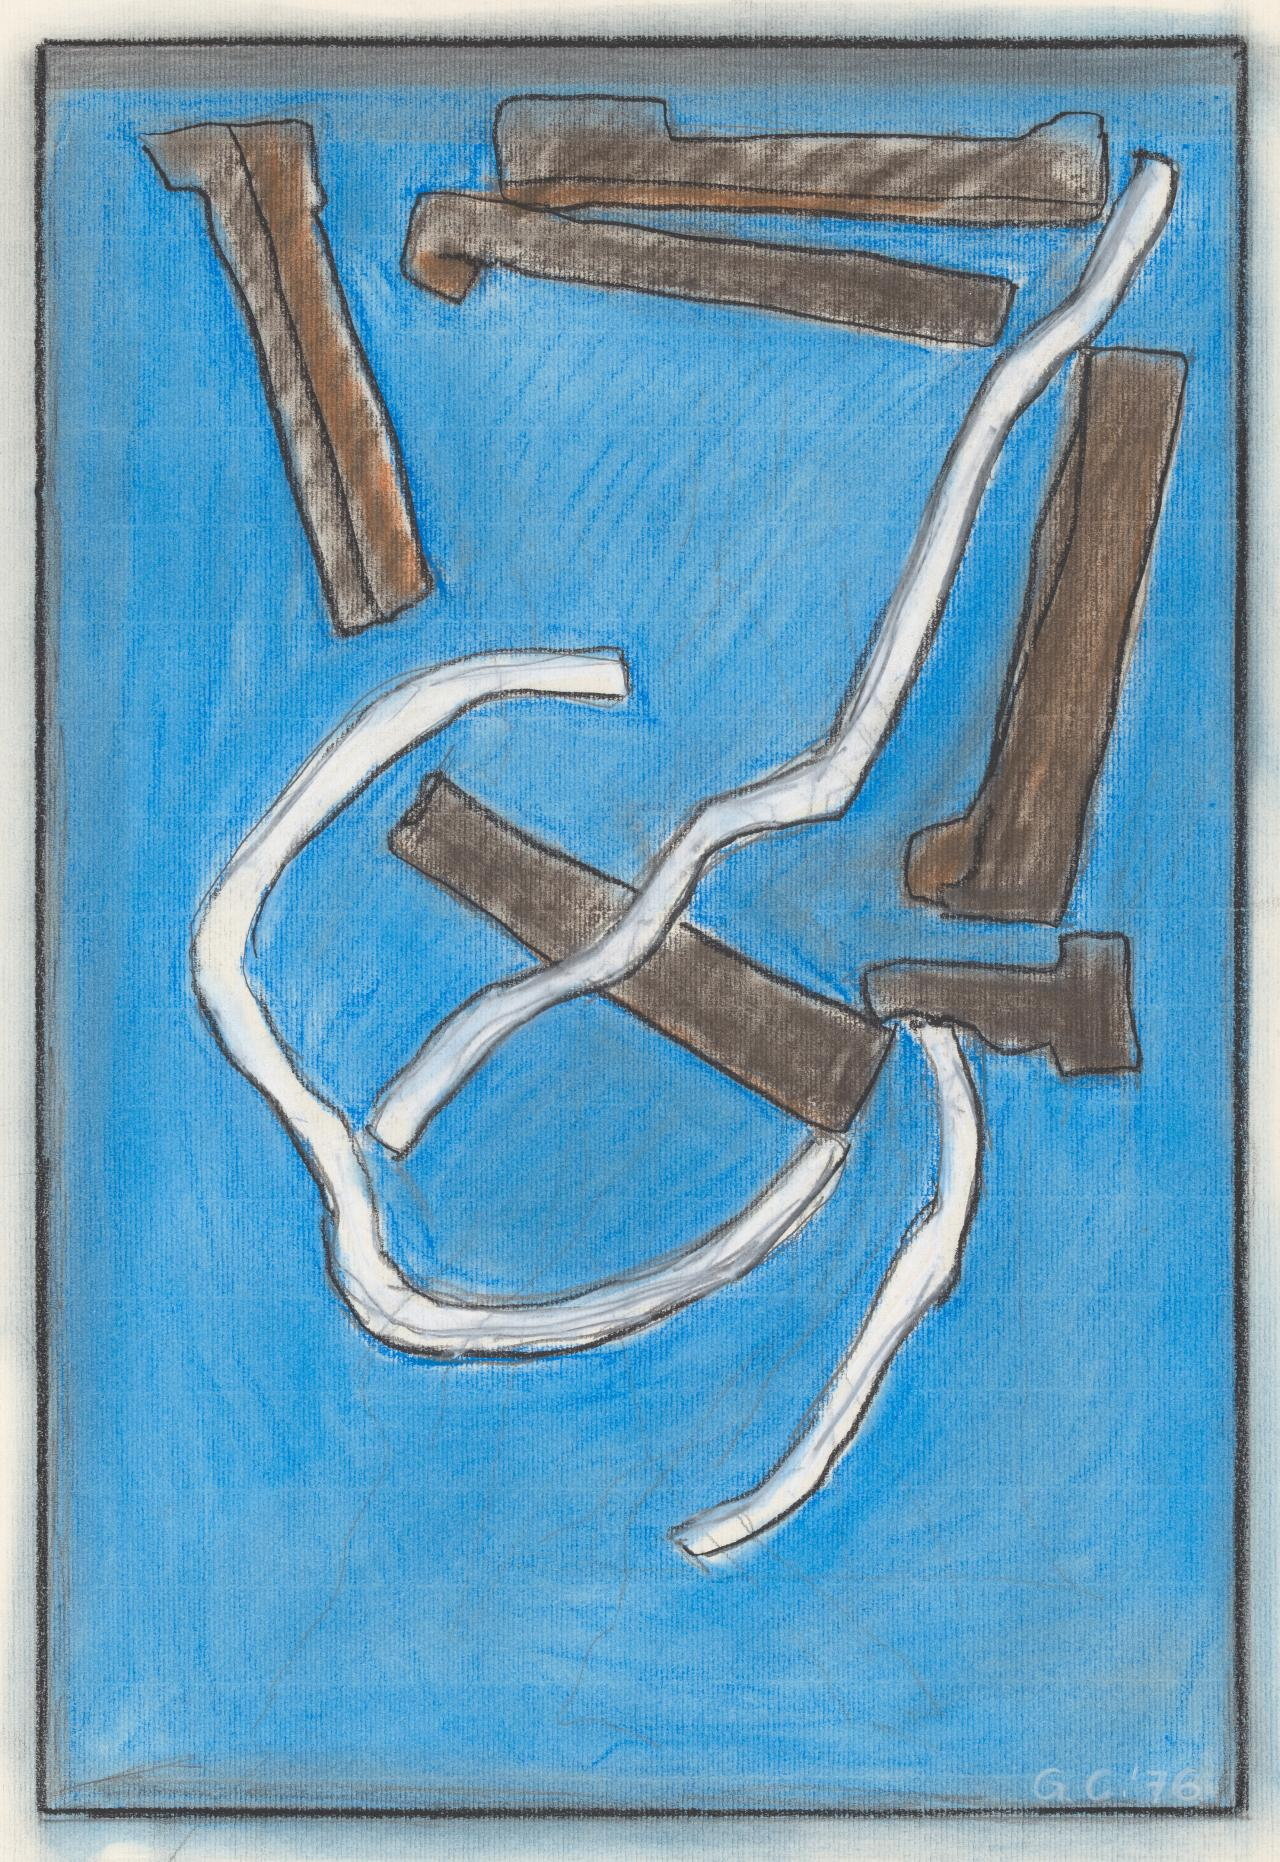 (Untitled) (Abstract shapes on blue ground)